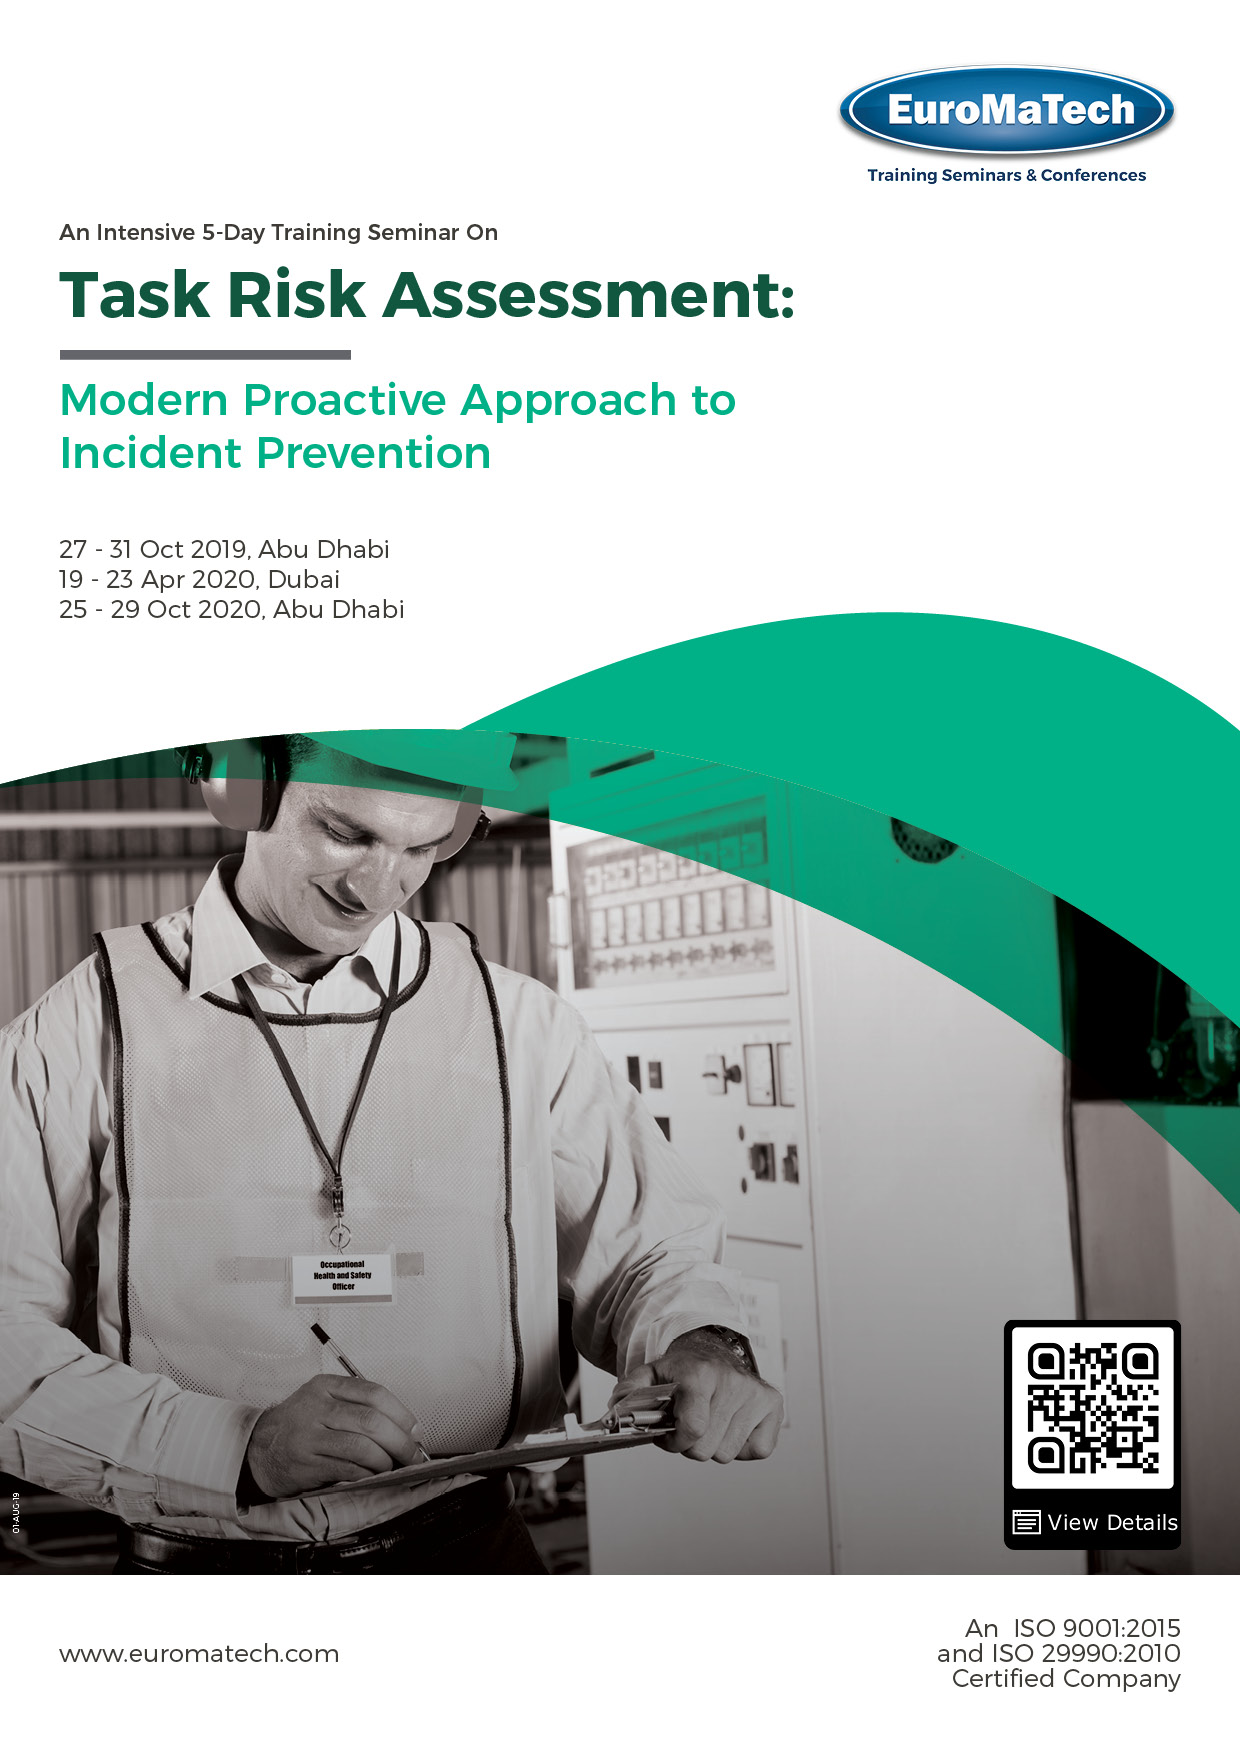 Task Risk Assessment: Modern Proactive Approach to Incident Prevention Thumbnail